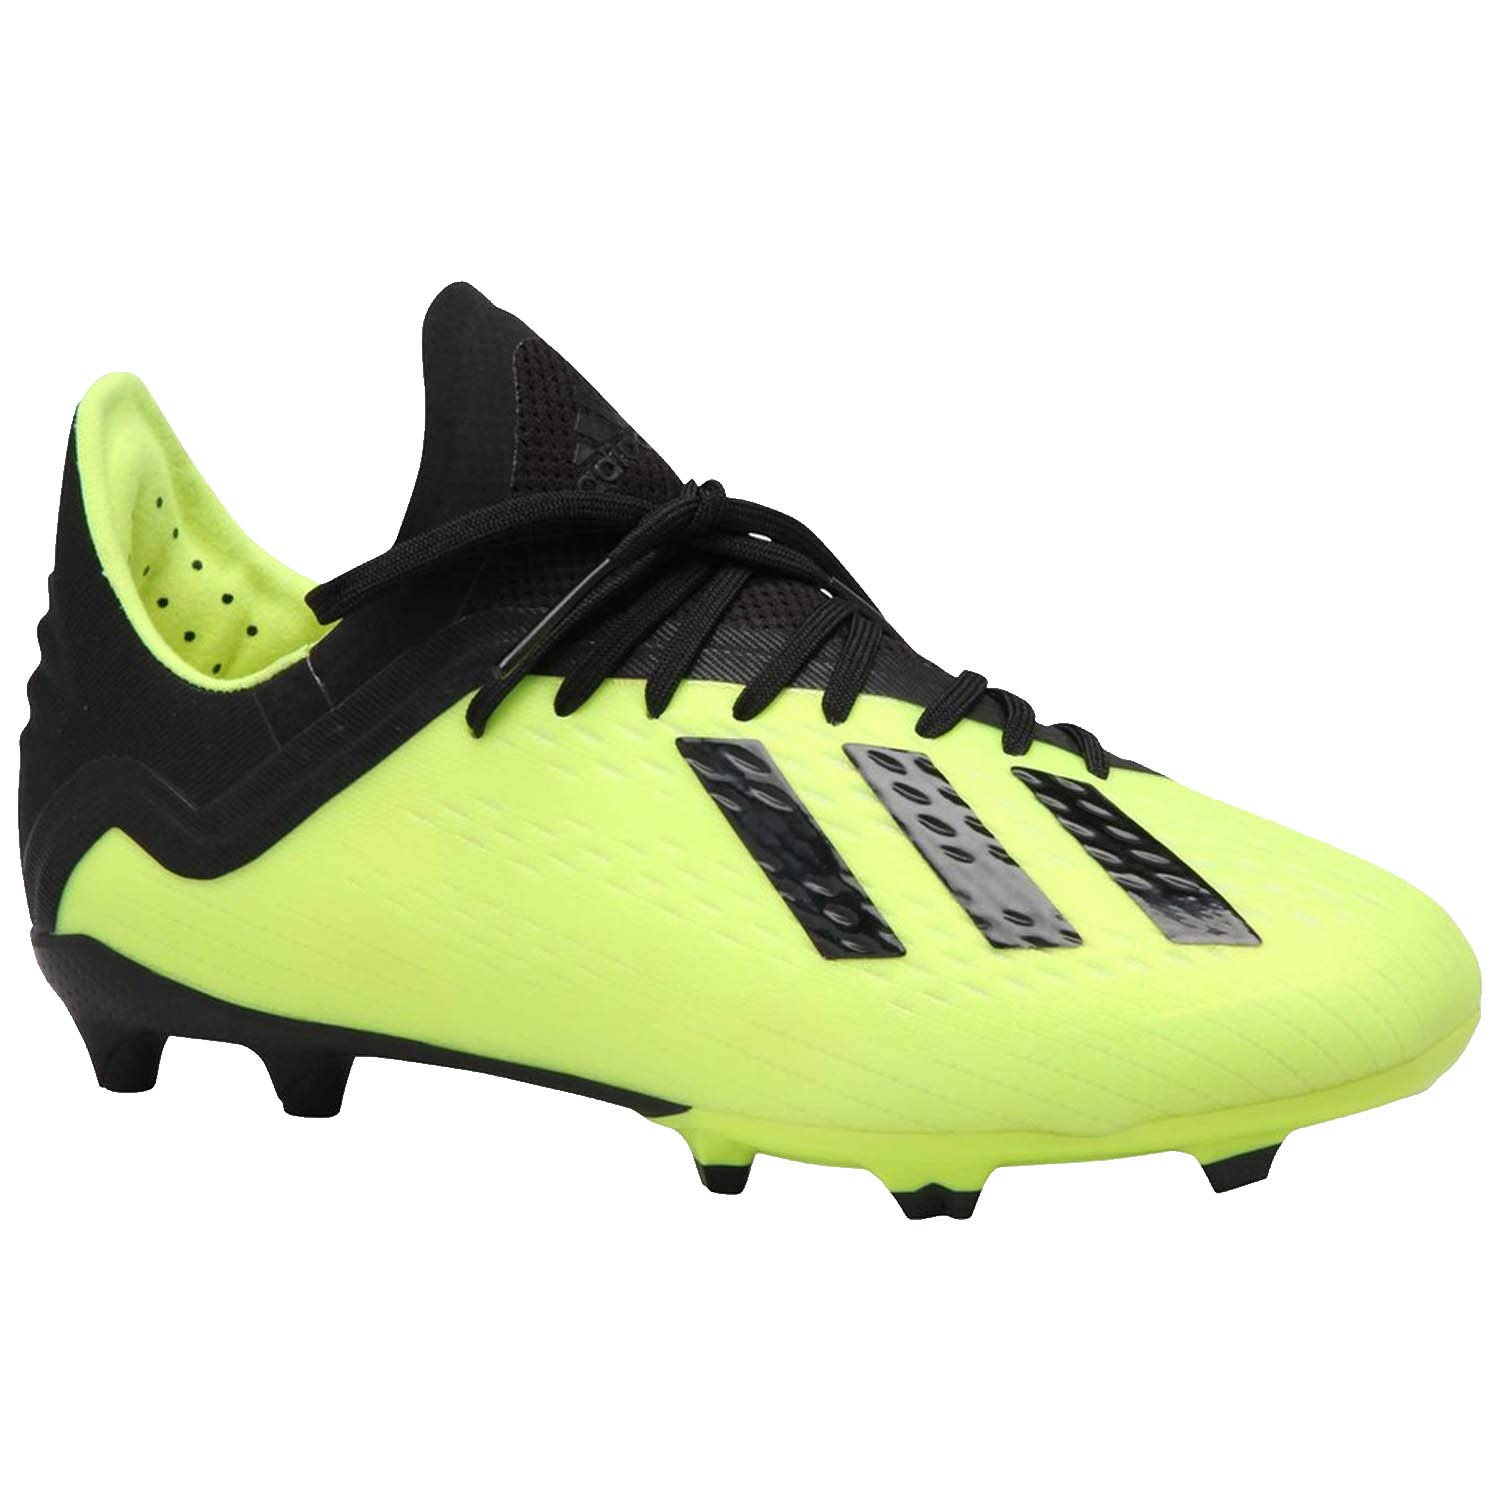 reputable site 789c9 1e390 Amazon.com | adidas Kid's X 18.1 FG Soccer Cleat | Soccer